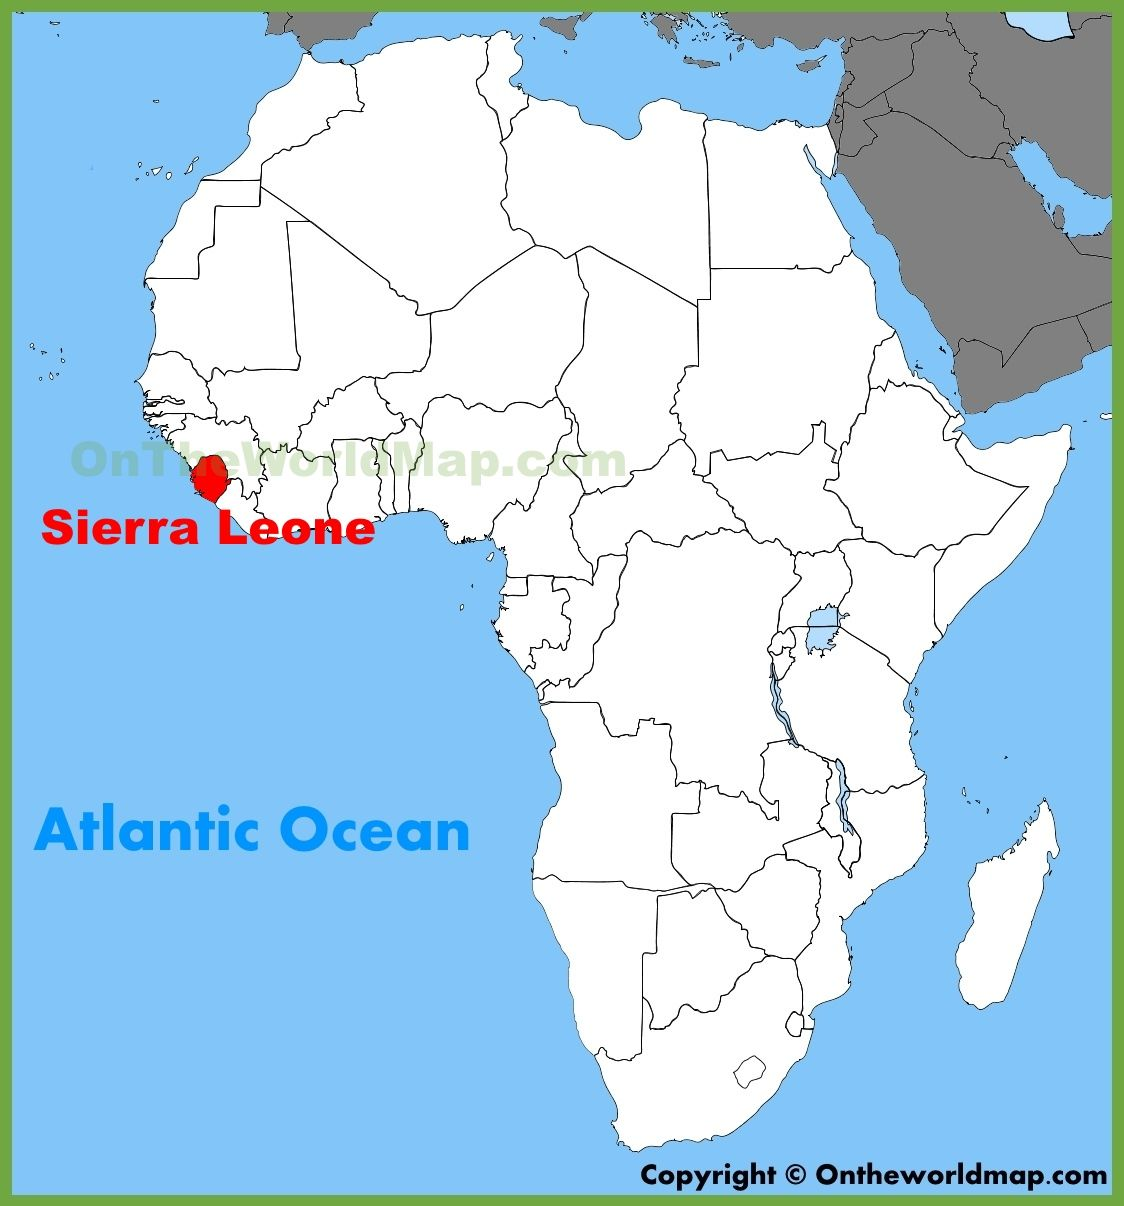 Map Of Africa Sierra Leone Sierra Leone location on the Africa map | Africa map, African map, Map